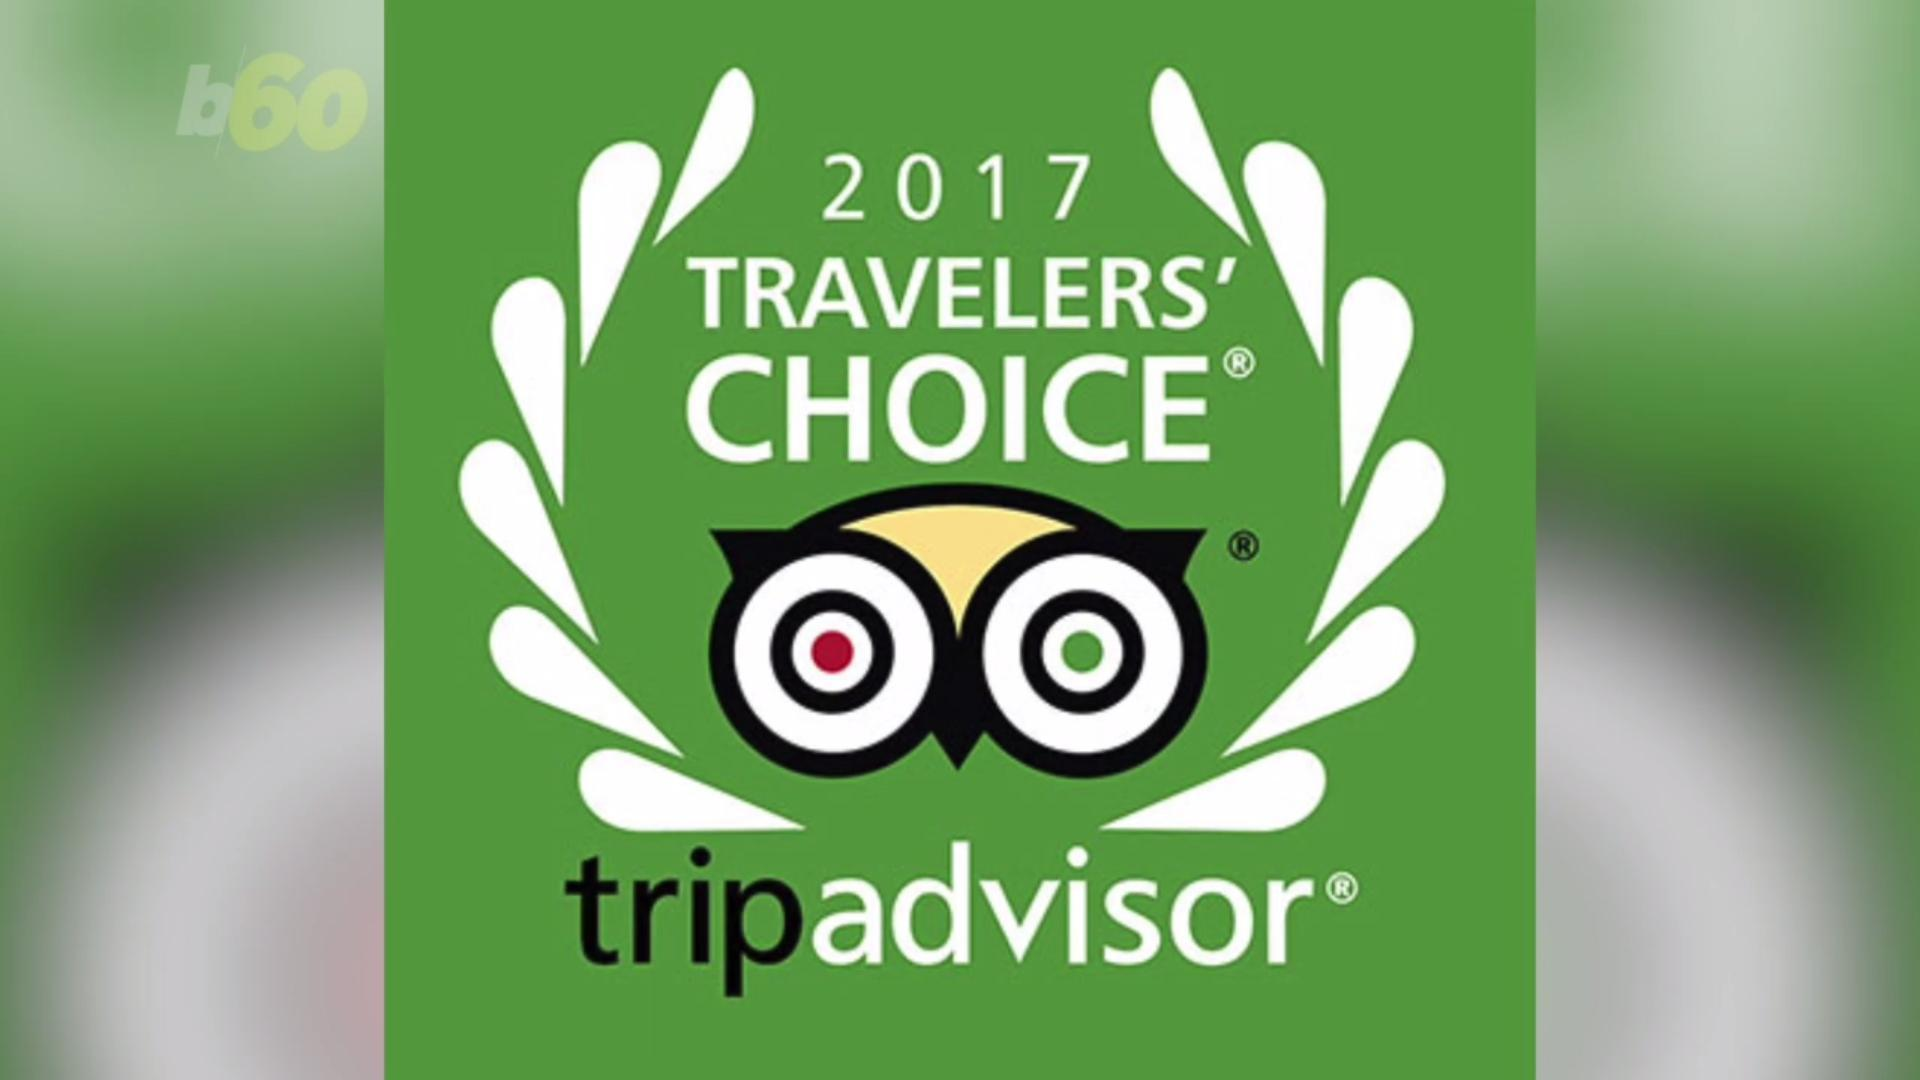 TripAdvisor Releases 2017 Travelers' Choice Awards